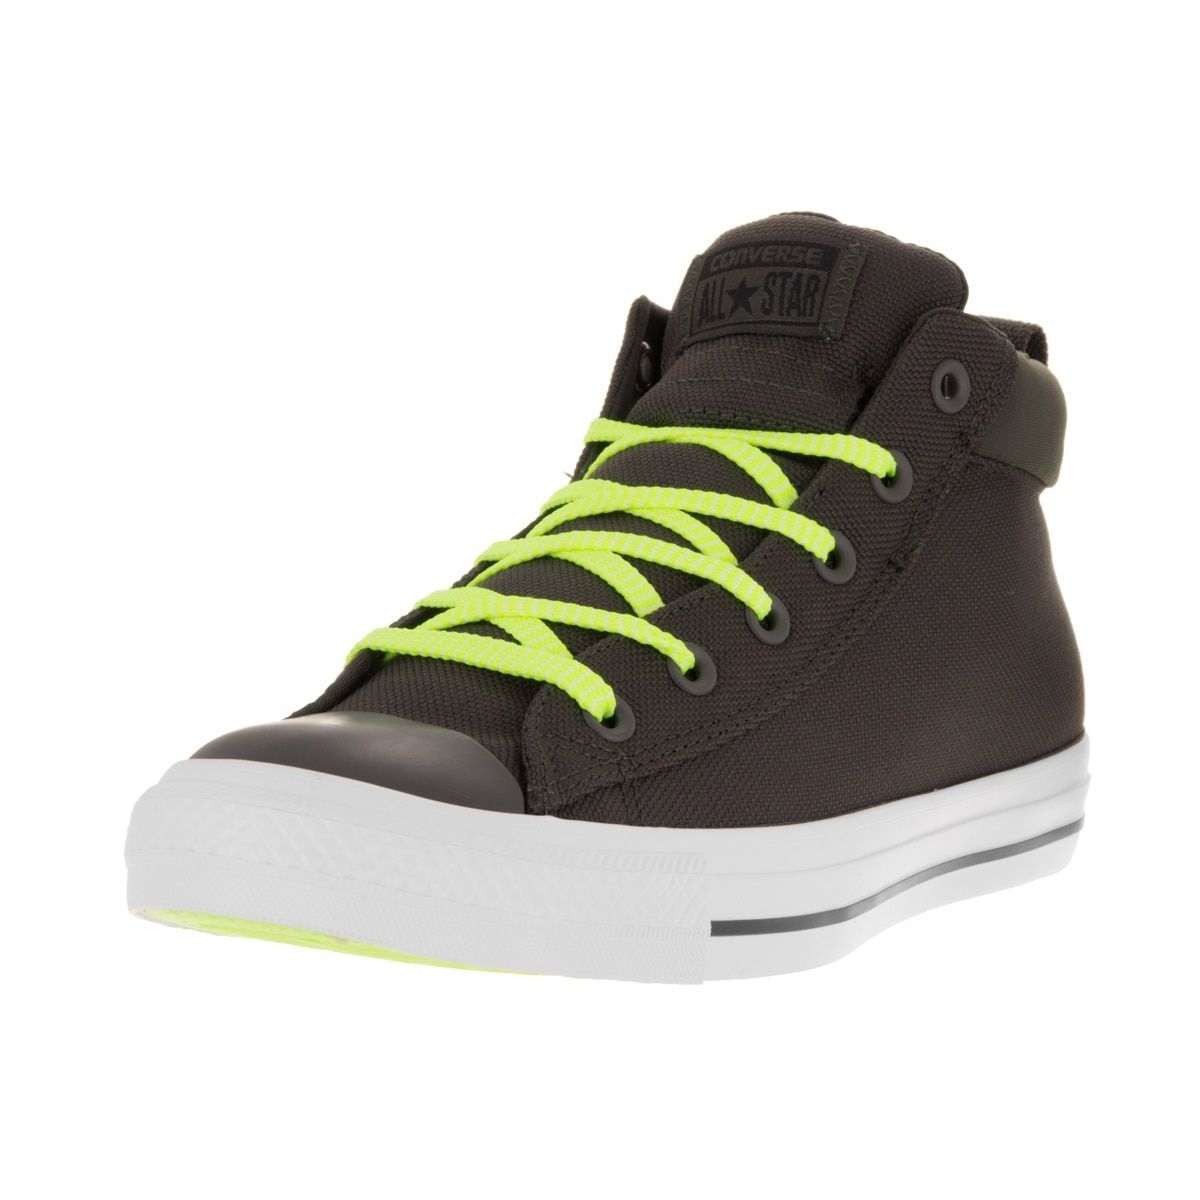 58bb5f4e23e0 Converse Unisex Chuck Taylor All Star Street Mid Cast Iron Wh Casual Shoe